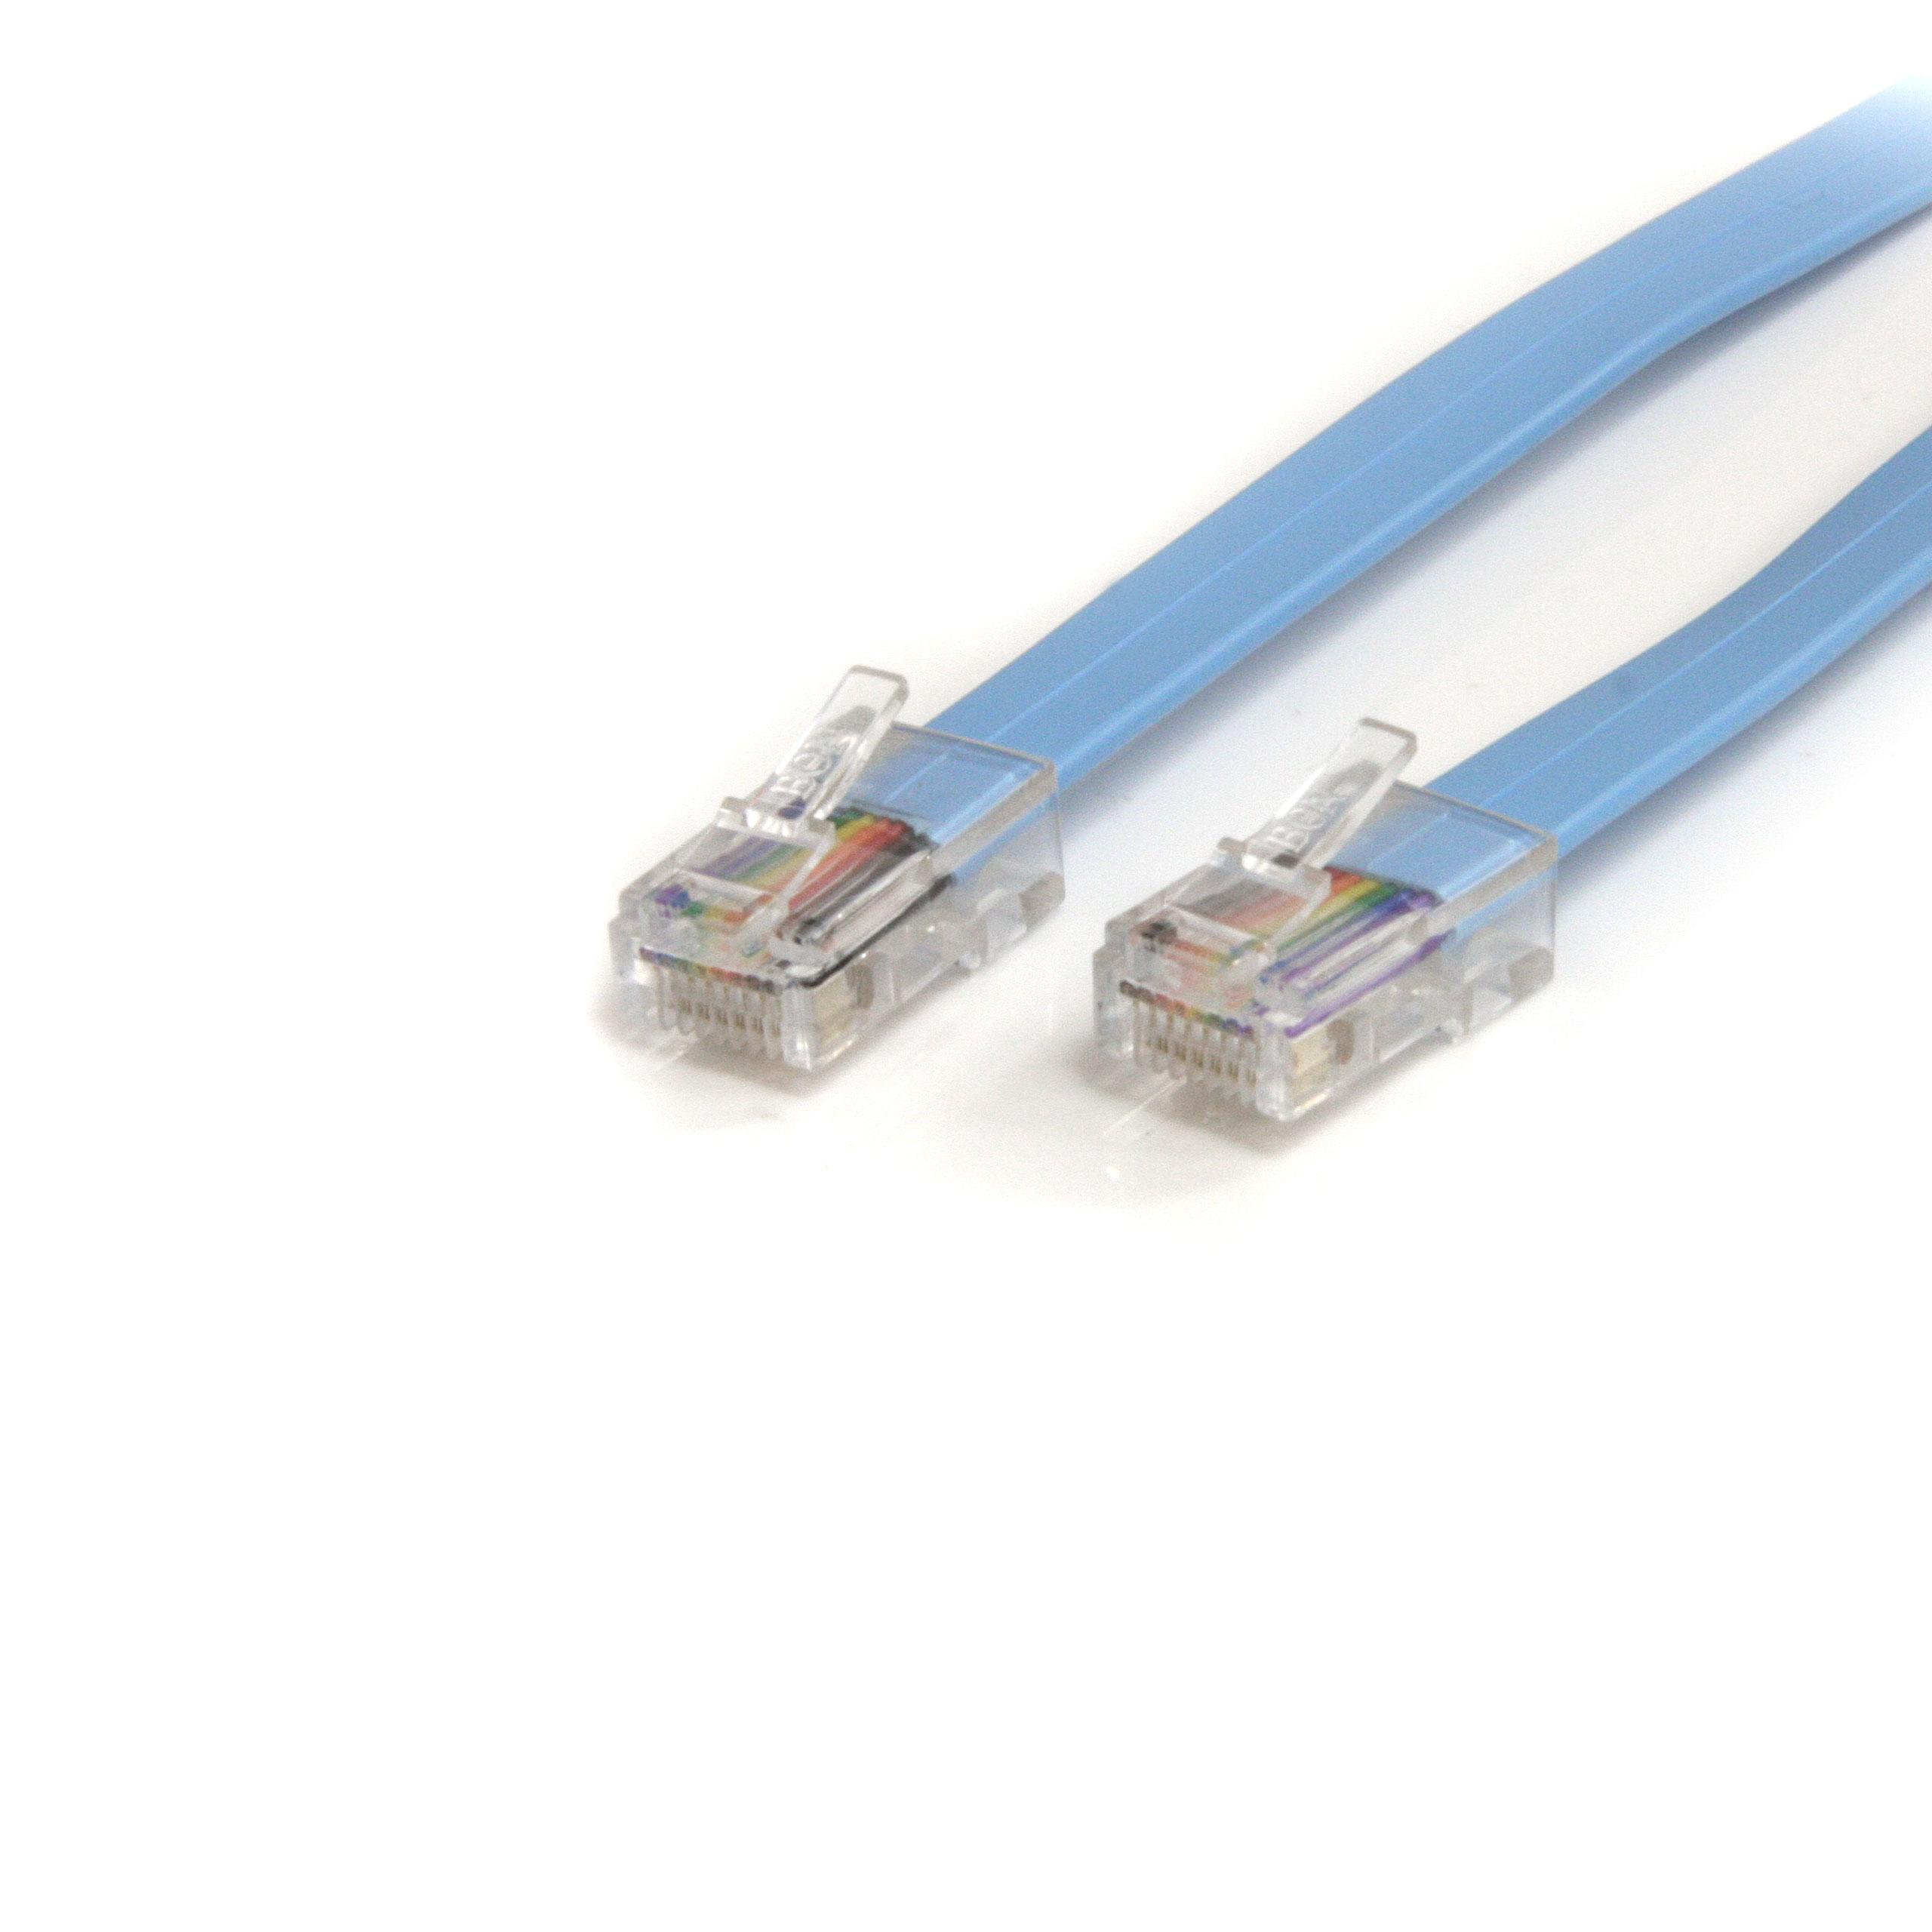 Startechcom 6 Ft Cisco Console Rollover Cable Rj45 M Amazonco Socket Wiring Australia View Larger